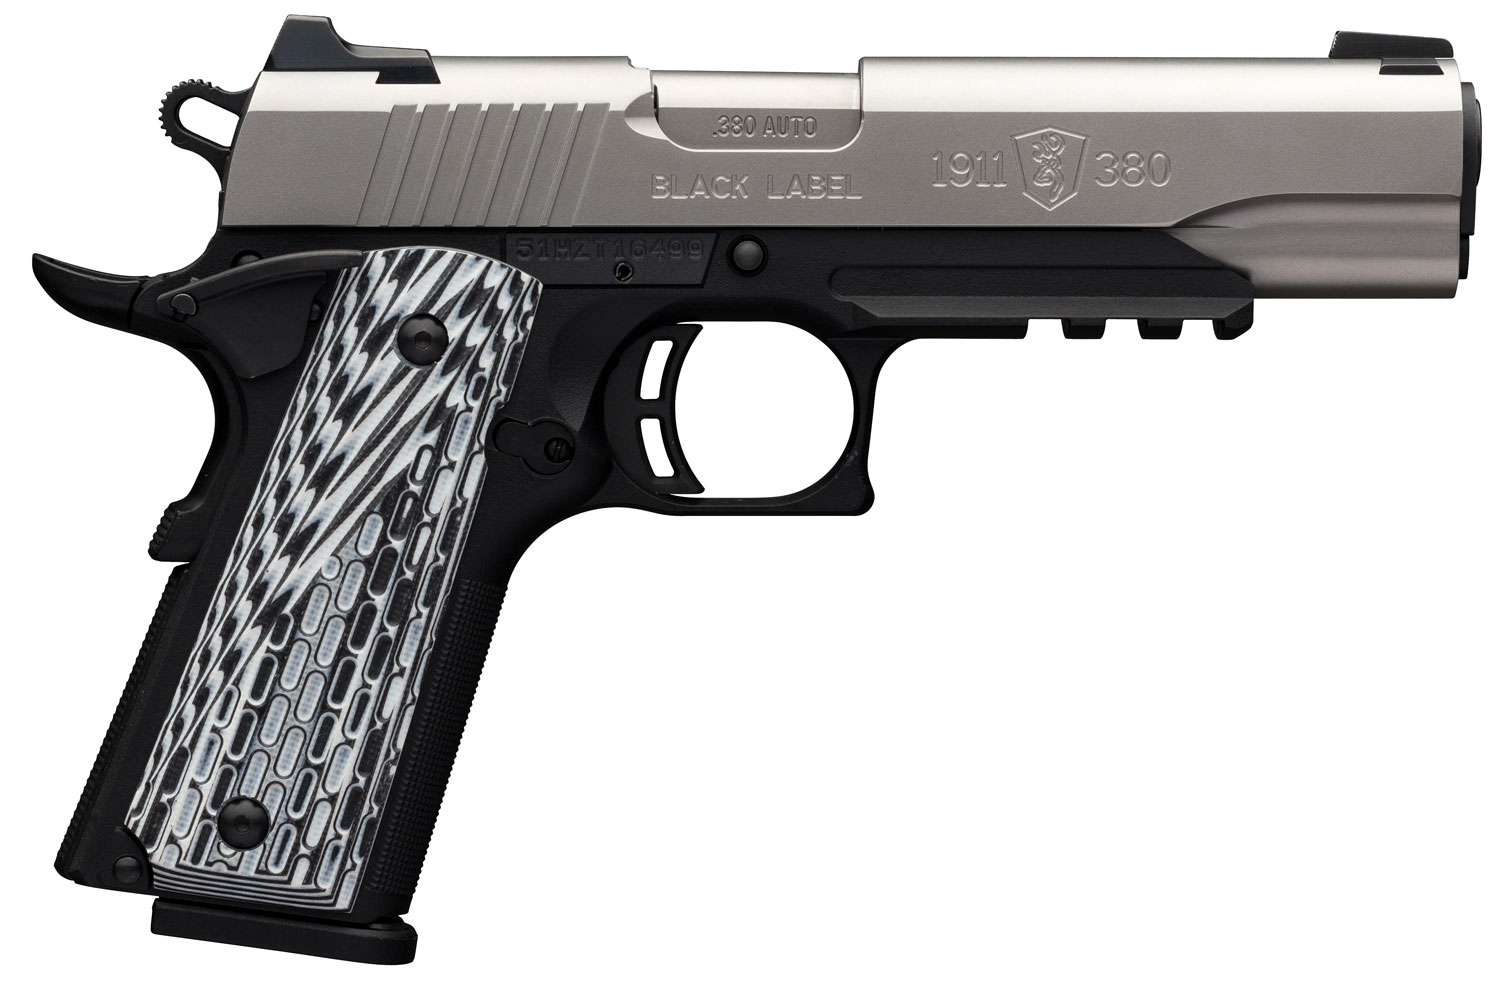 Browning 051923492 1911-380 Black Label Pro with Rail Single 380 Automatic Colt Pistol (ACP) 4.25